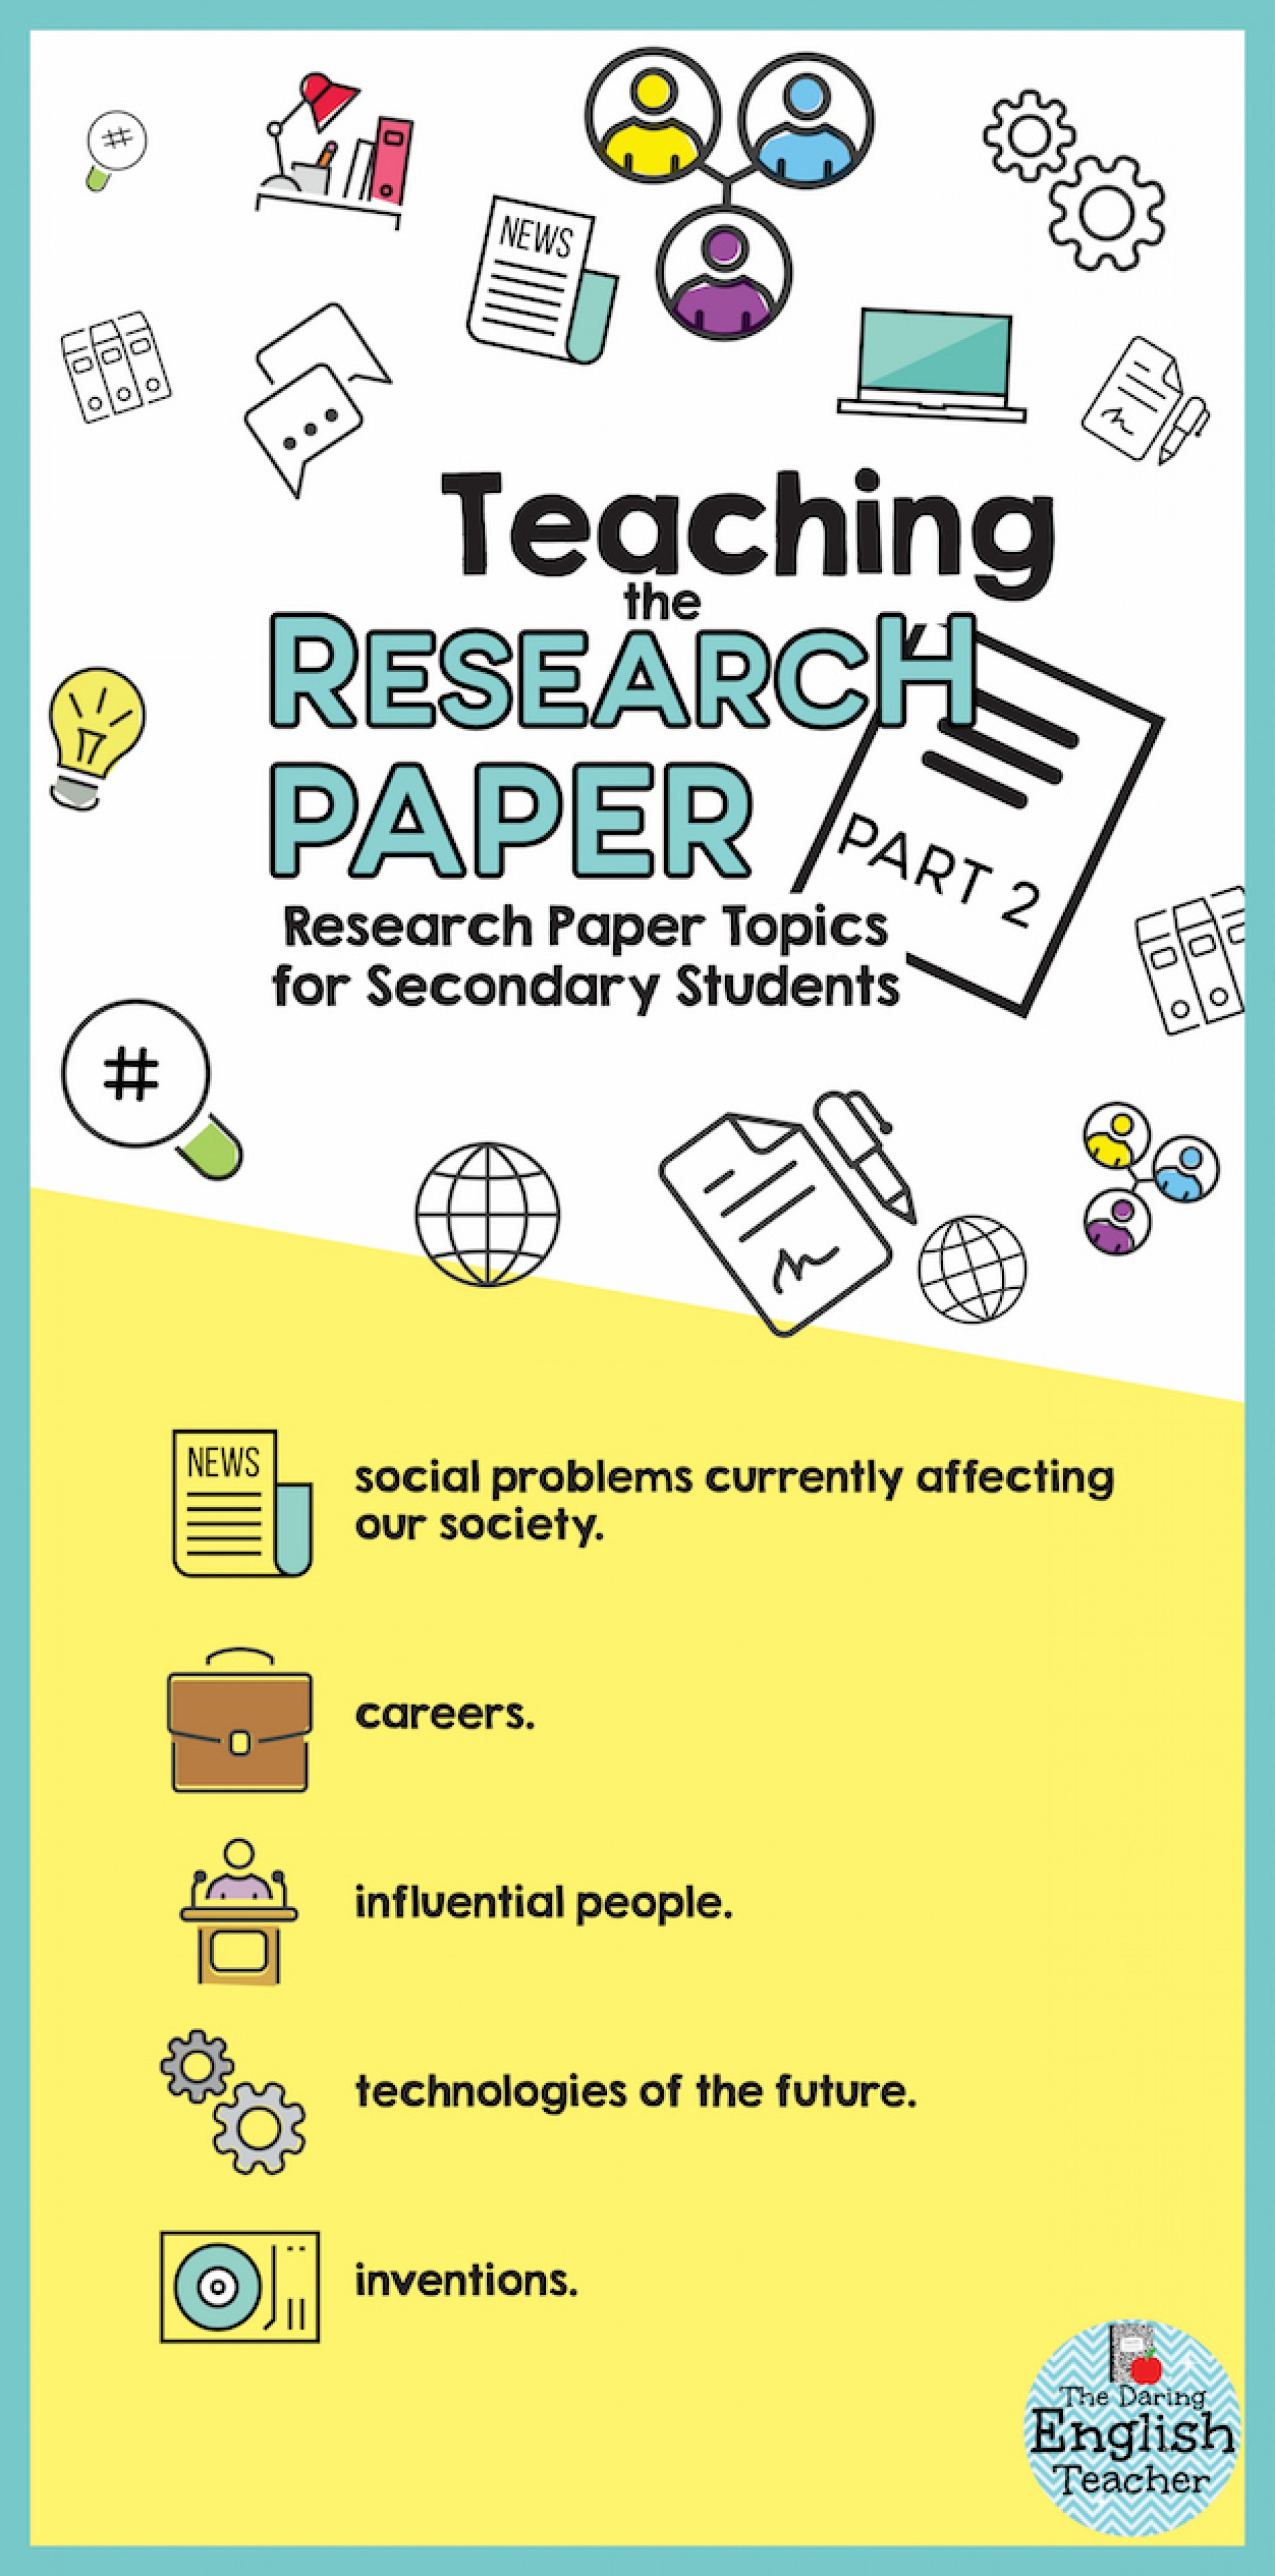 005 Infographic2bp22b2 Research Paper English Awful Topics Literature Easy 1920